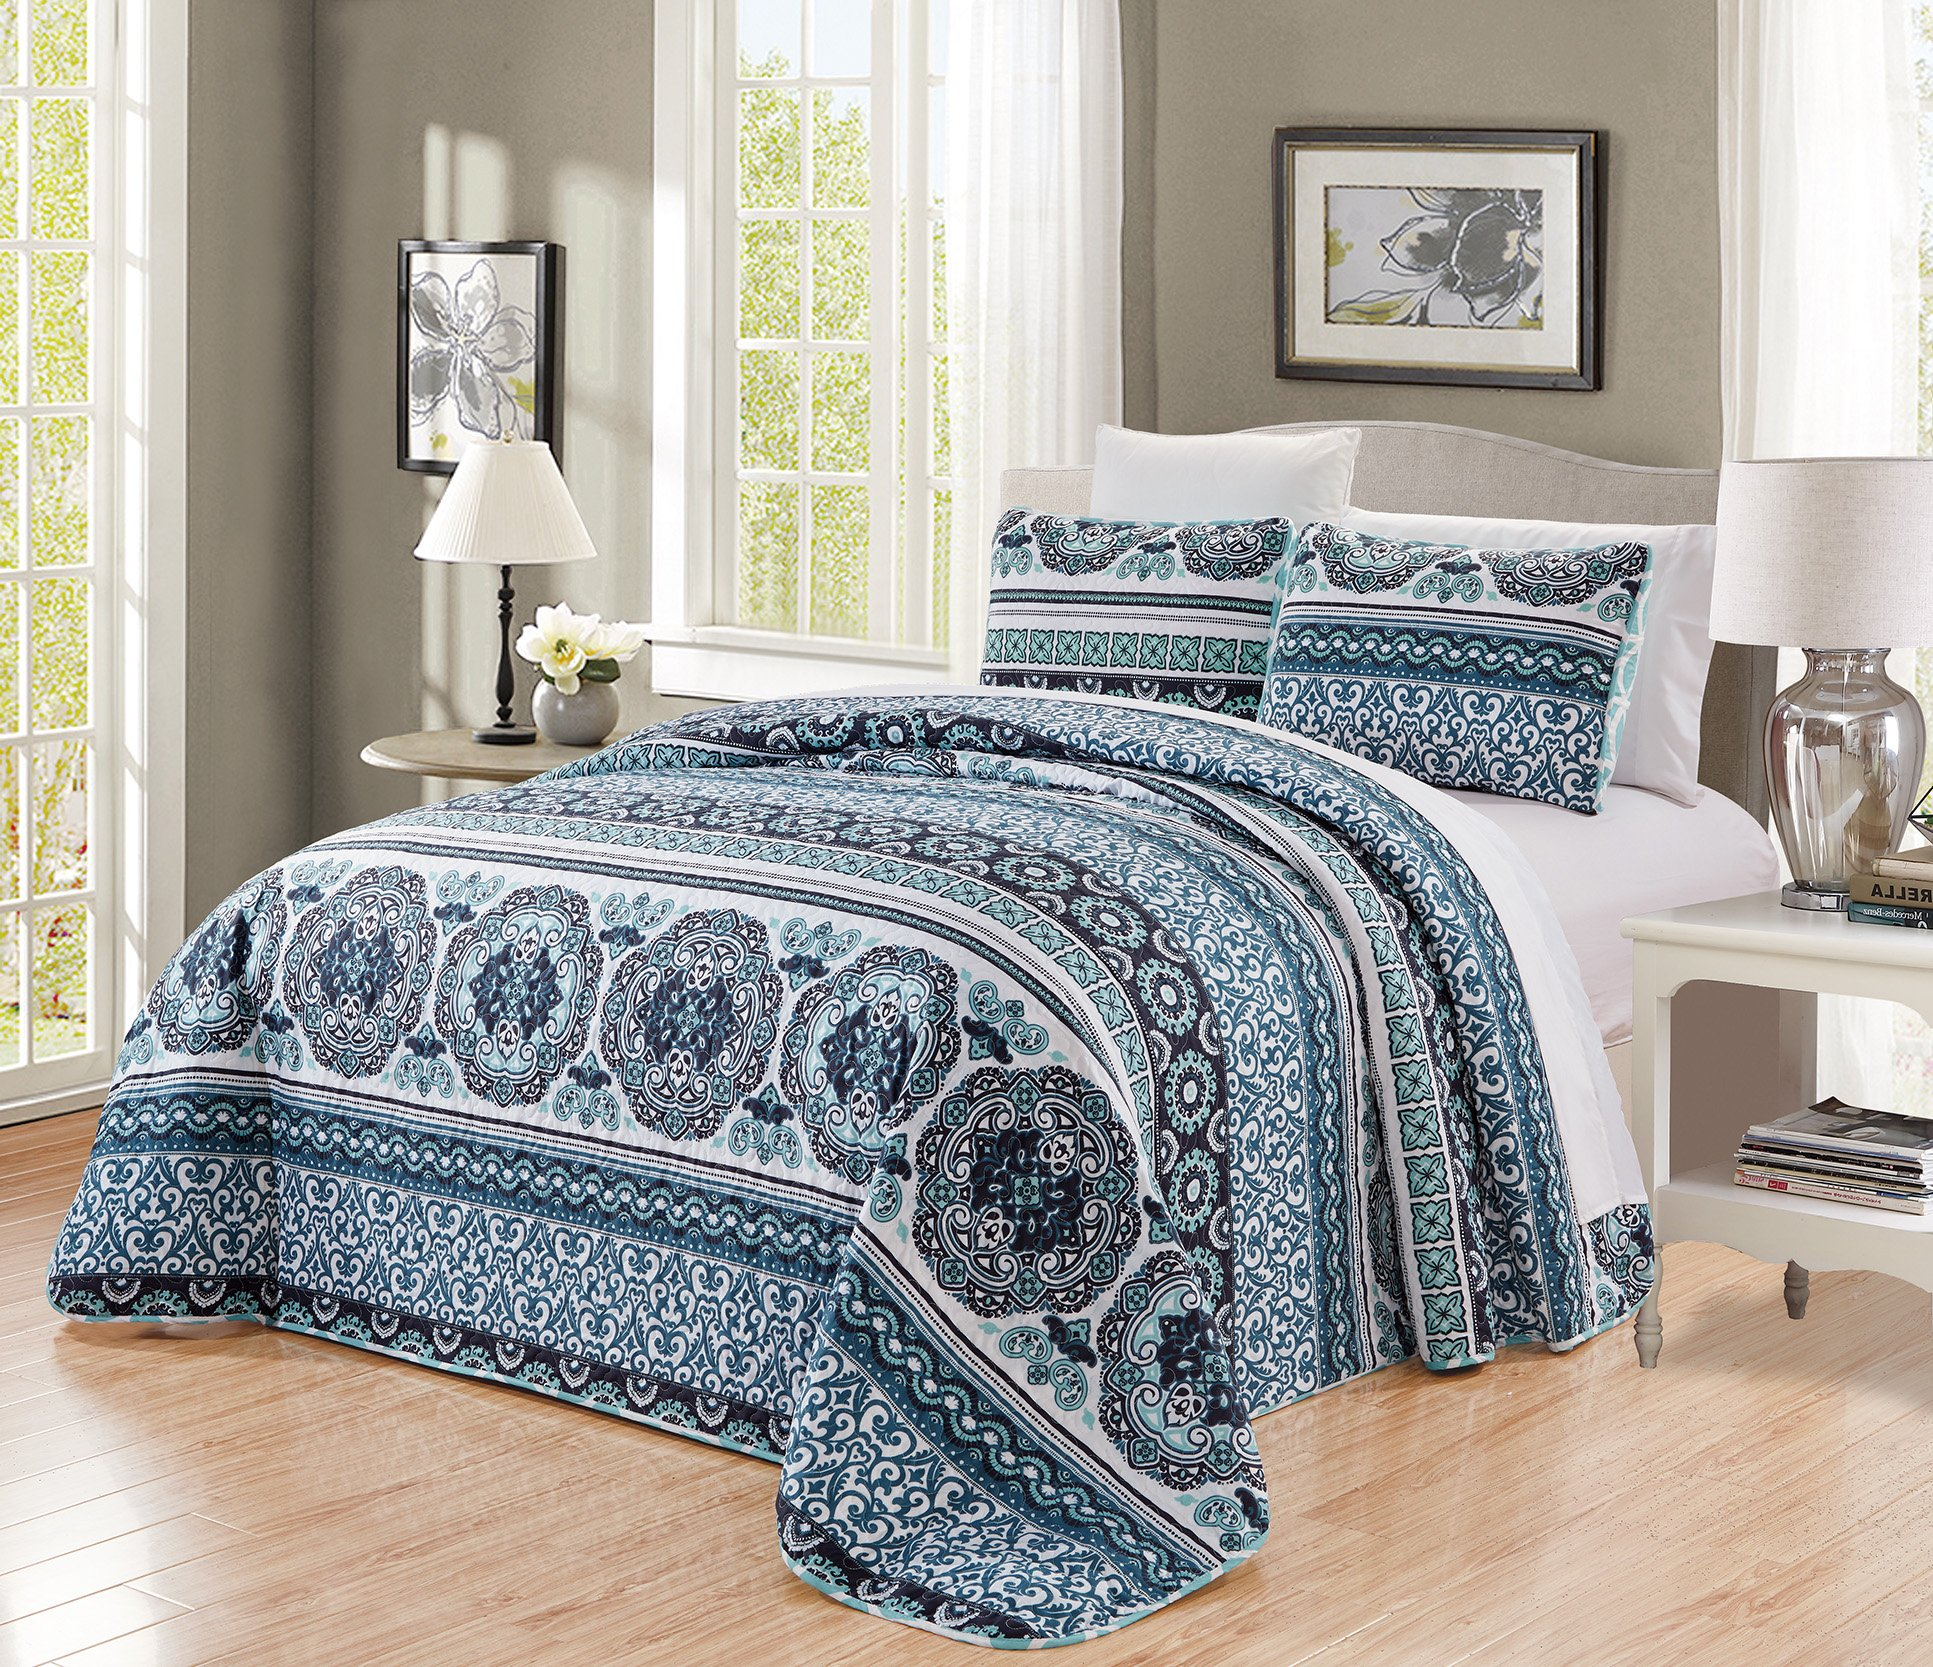 GrandLinen 3-Piece Fine Printed Oversize (115'' X 95'') Quilt Set Reversible Bedspread Coverlet King Size Bed Cover (Navy, Aqua, Blue, Black Scroll)